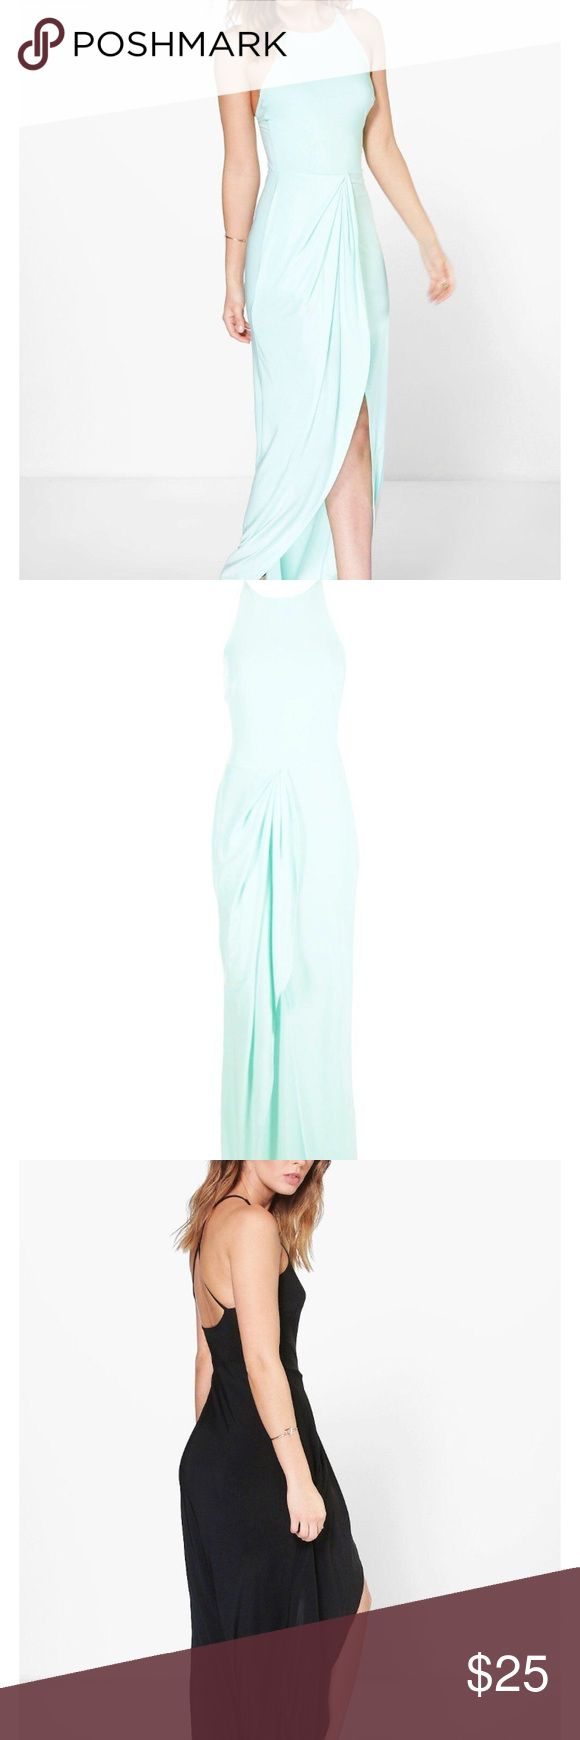 NWT Cross Back Mint Maxi Dress Super cute brand new with tags.  Stock photos are from brand's website to show fit not color.  The color is mint.  Make me an offer! Boohoo Dresses Maxi